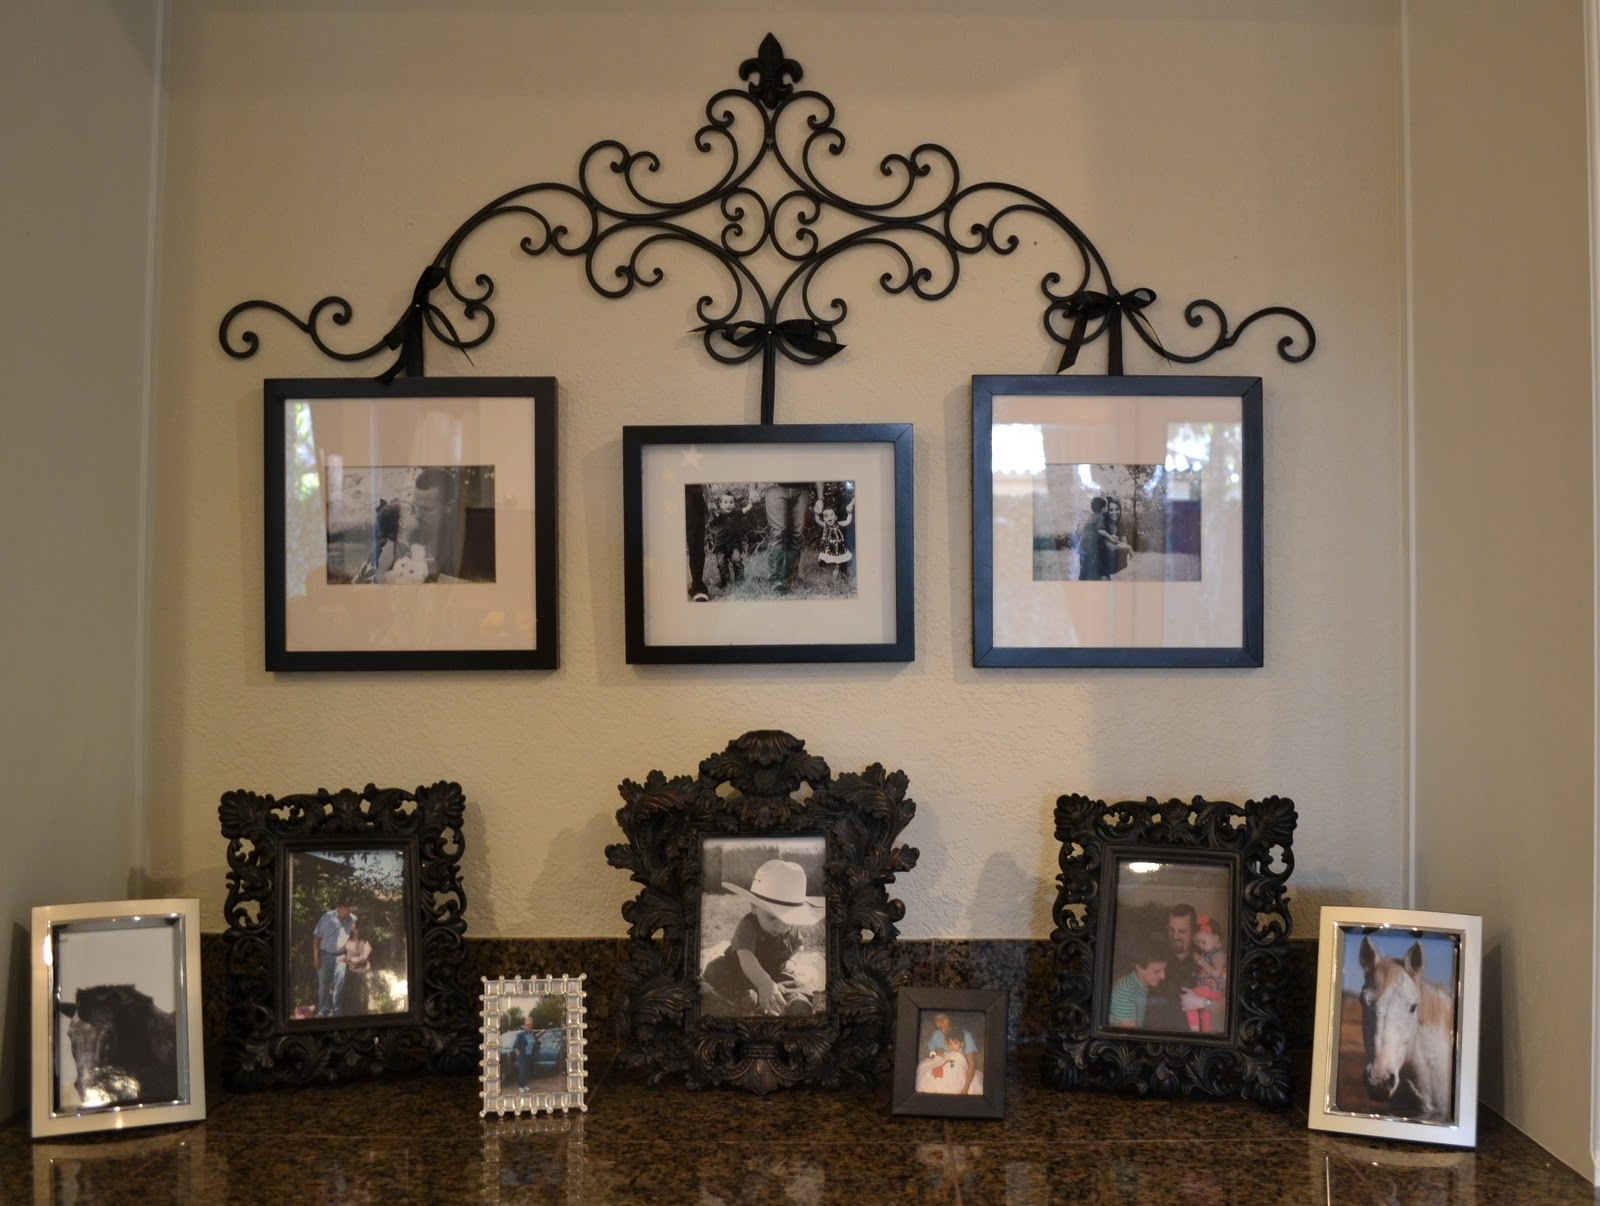 15 Beautiful Ways Of Using Iron Wall Decor At Home | Printmeposter with Iron Wall Art (Image 1 of 20)